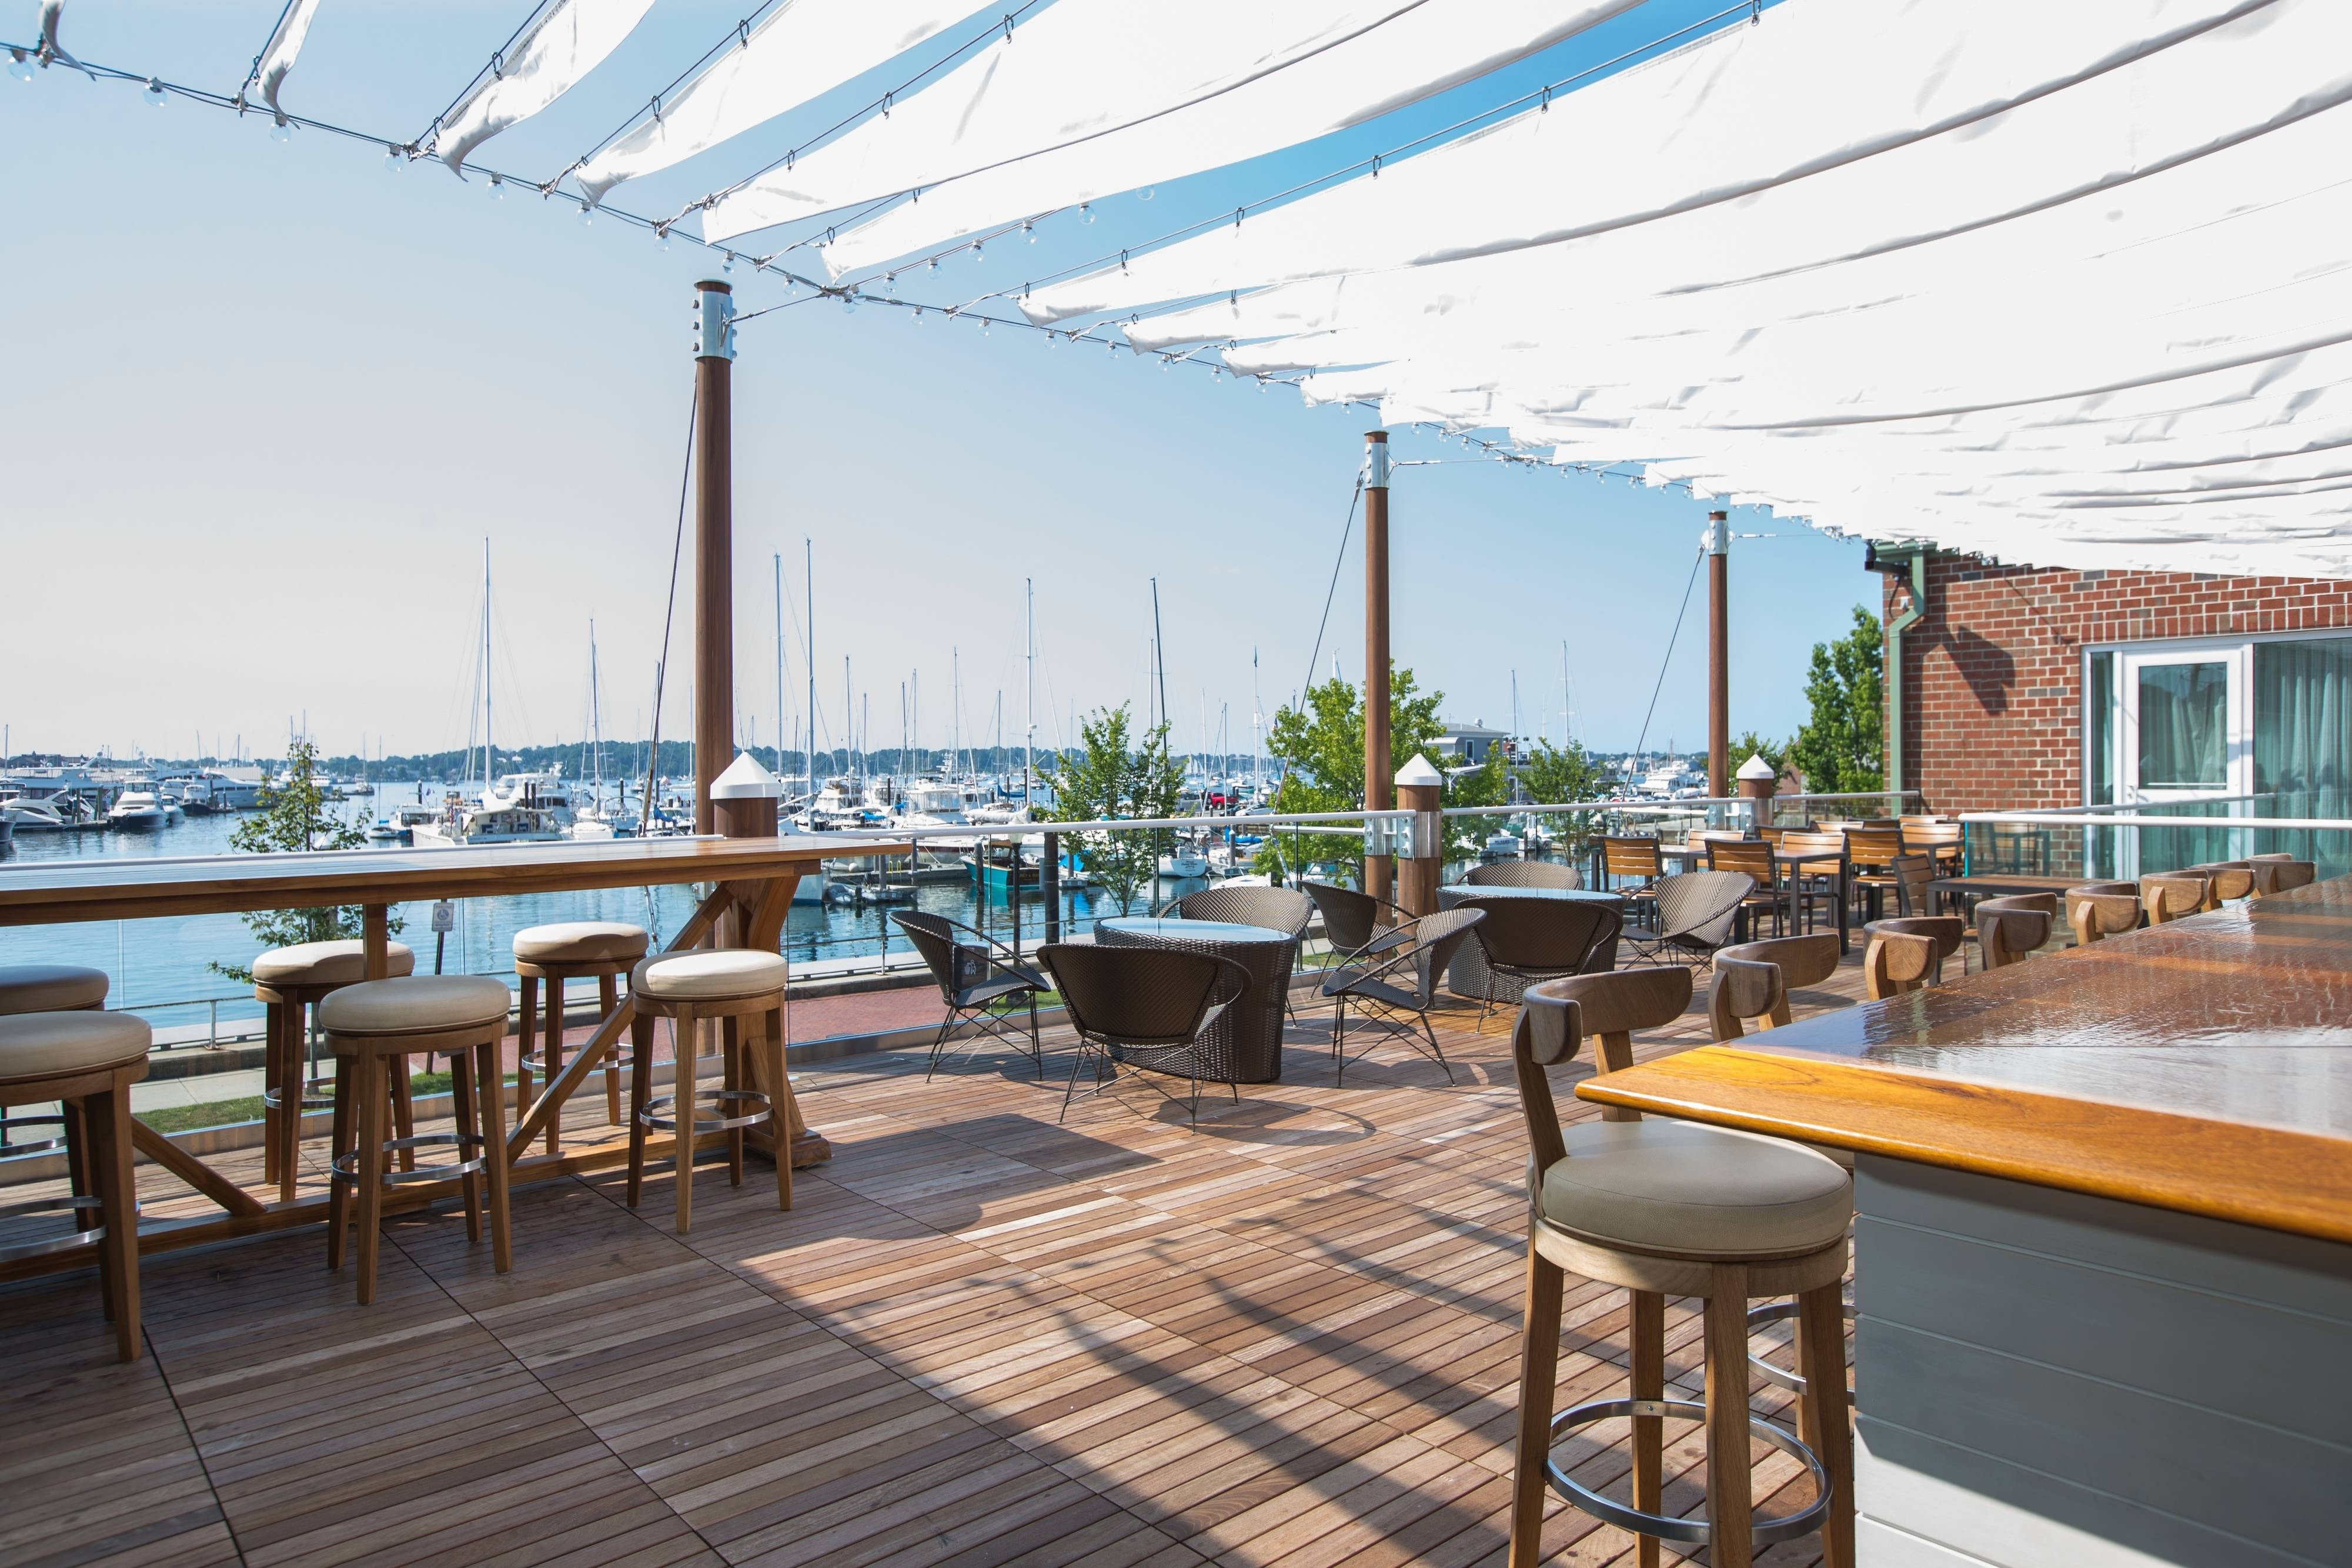 Newport Skiff Bar Outdoor Deck